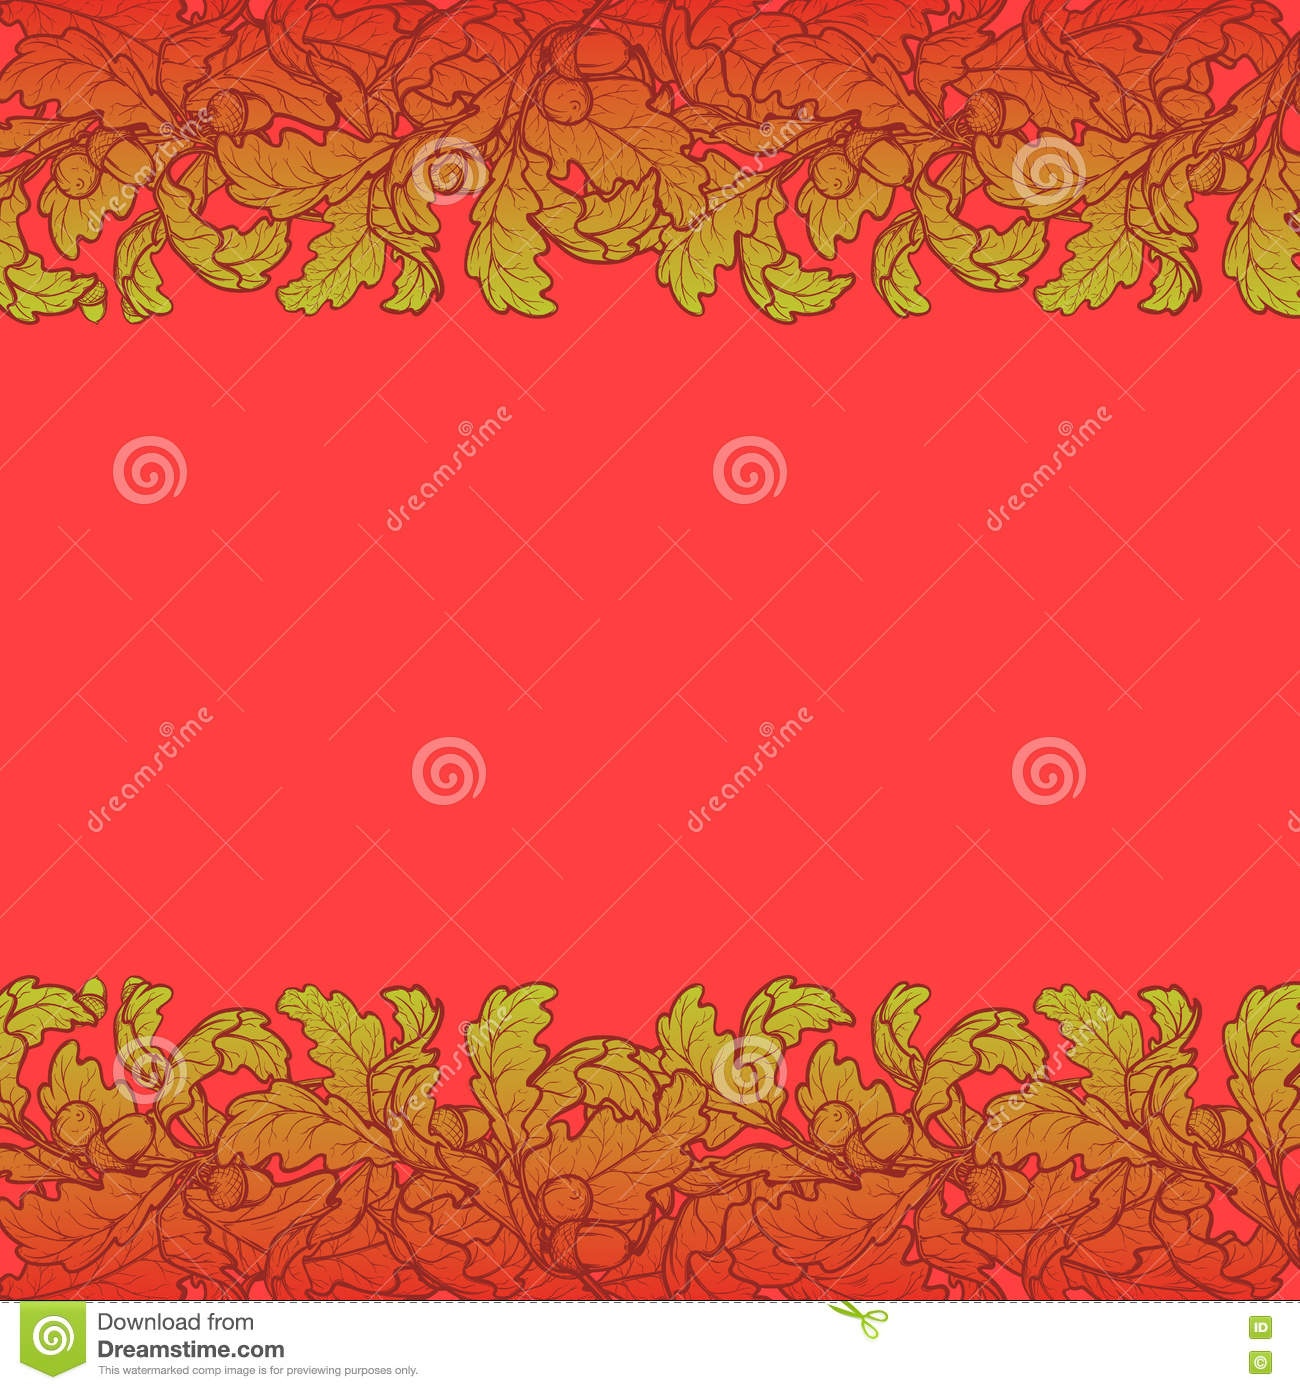 autumn leaves border brightly colored stock vector illustration